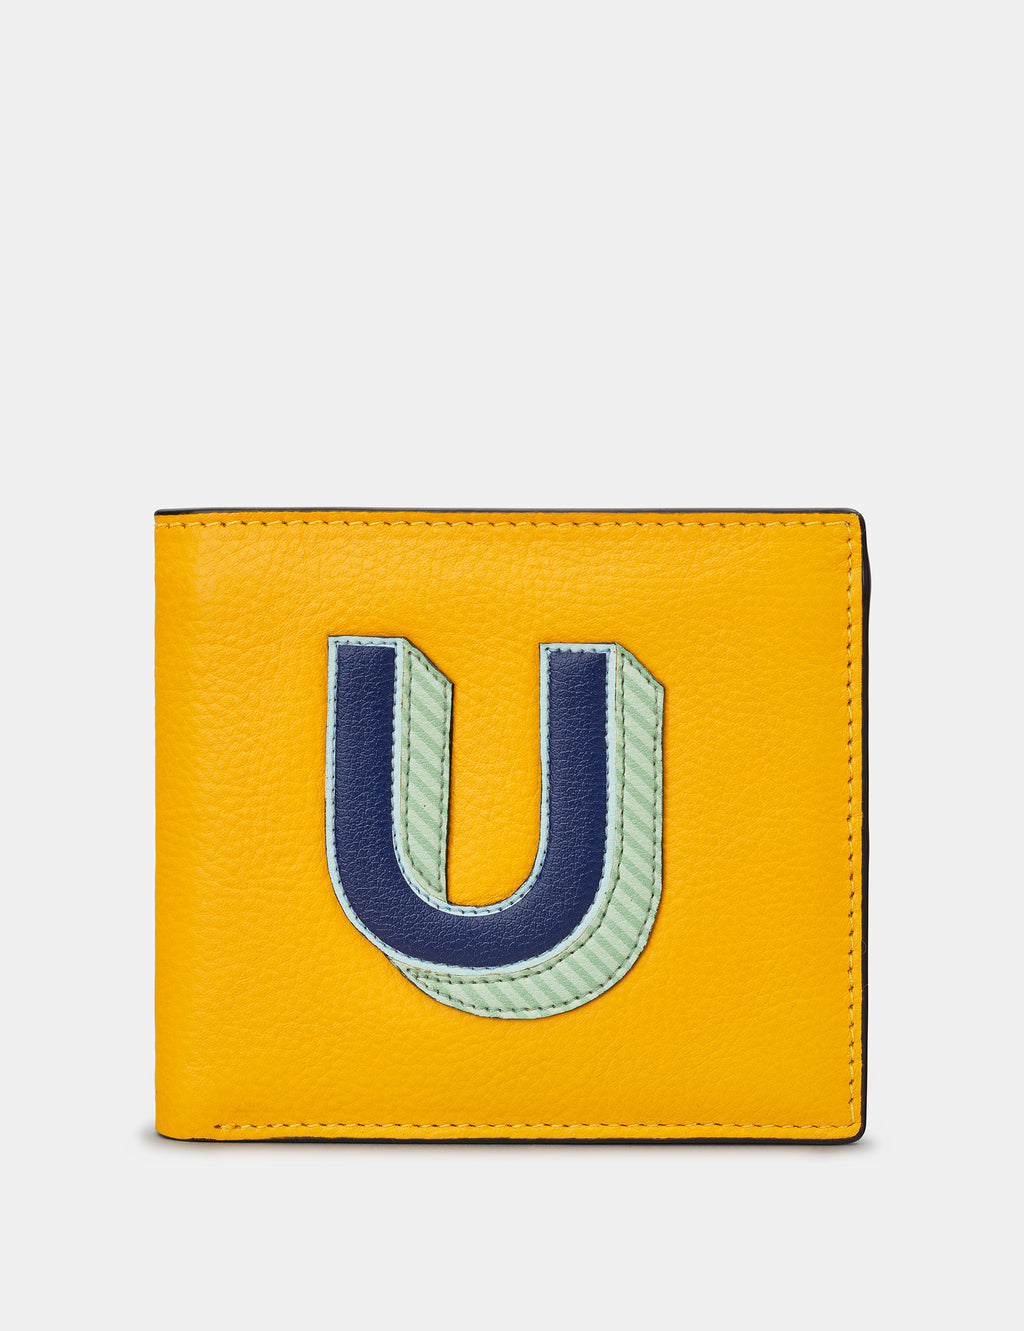 U Initial Mustard Yellow Leather Wallet